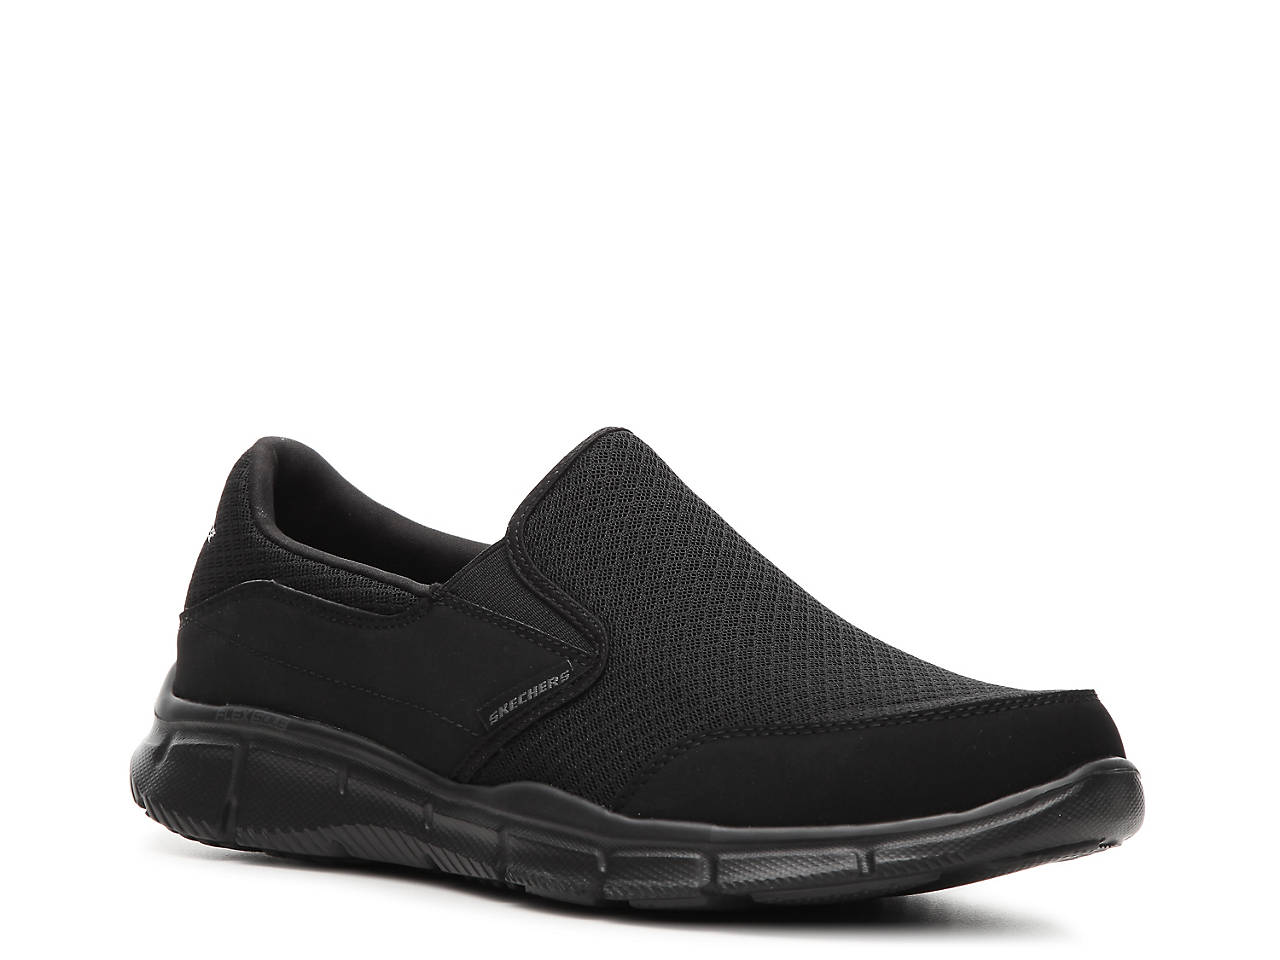 skechers slip on shoes mens